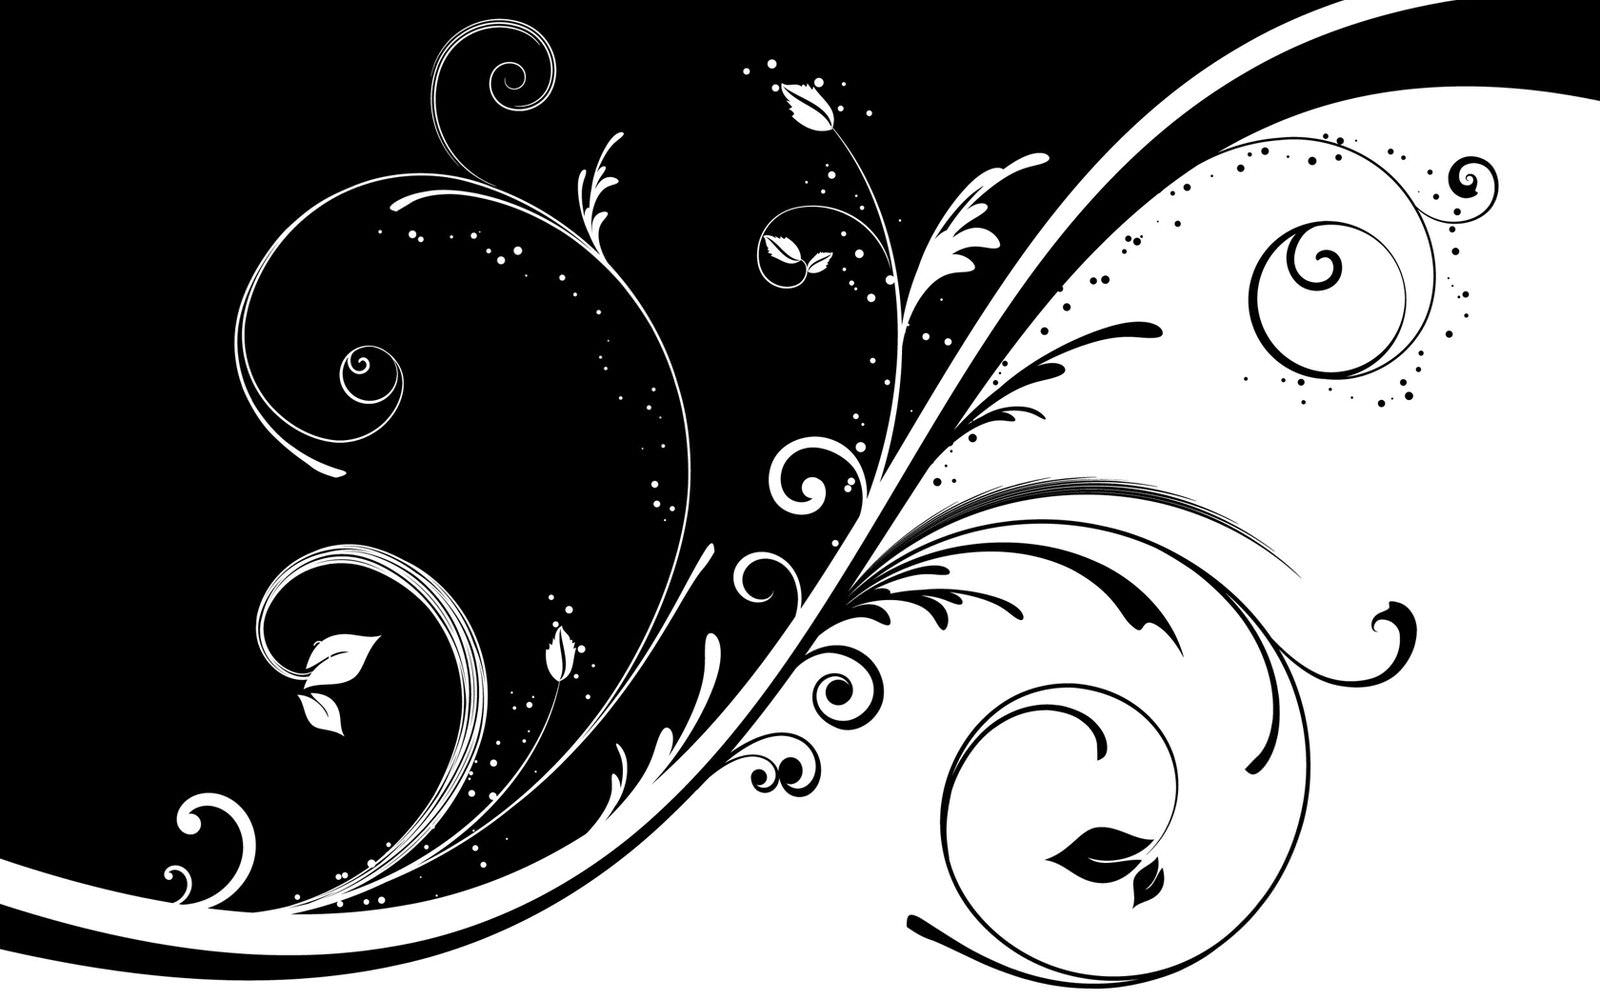 Black and White Abstract Art Flower Wallpaper